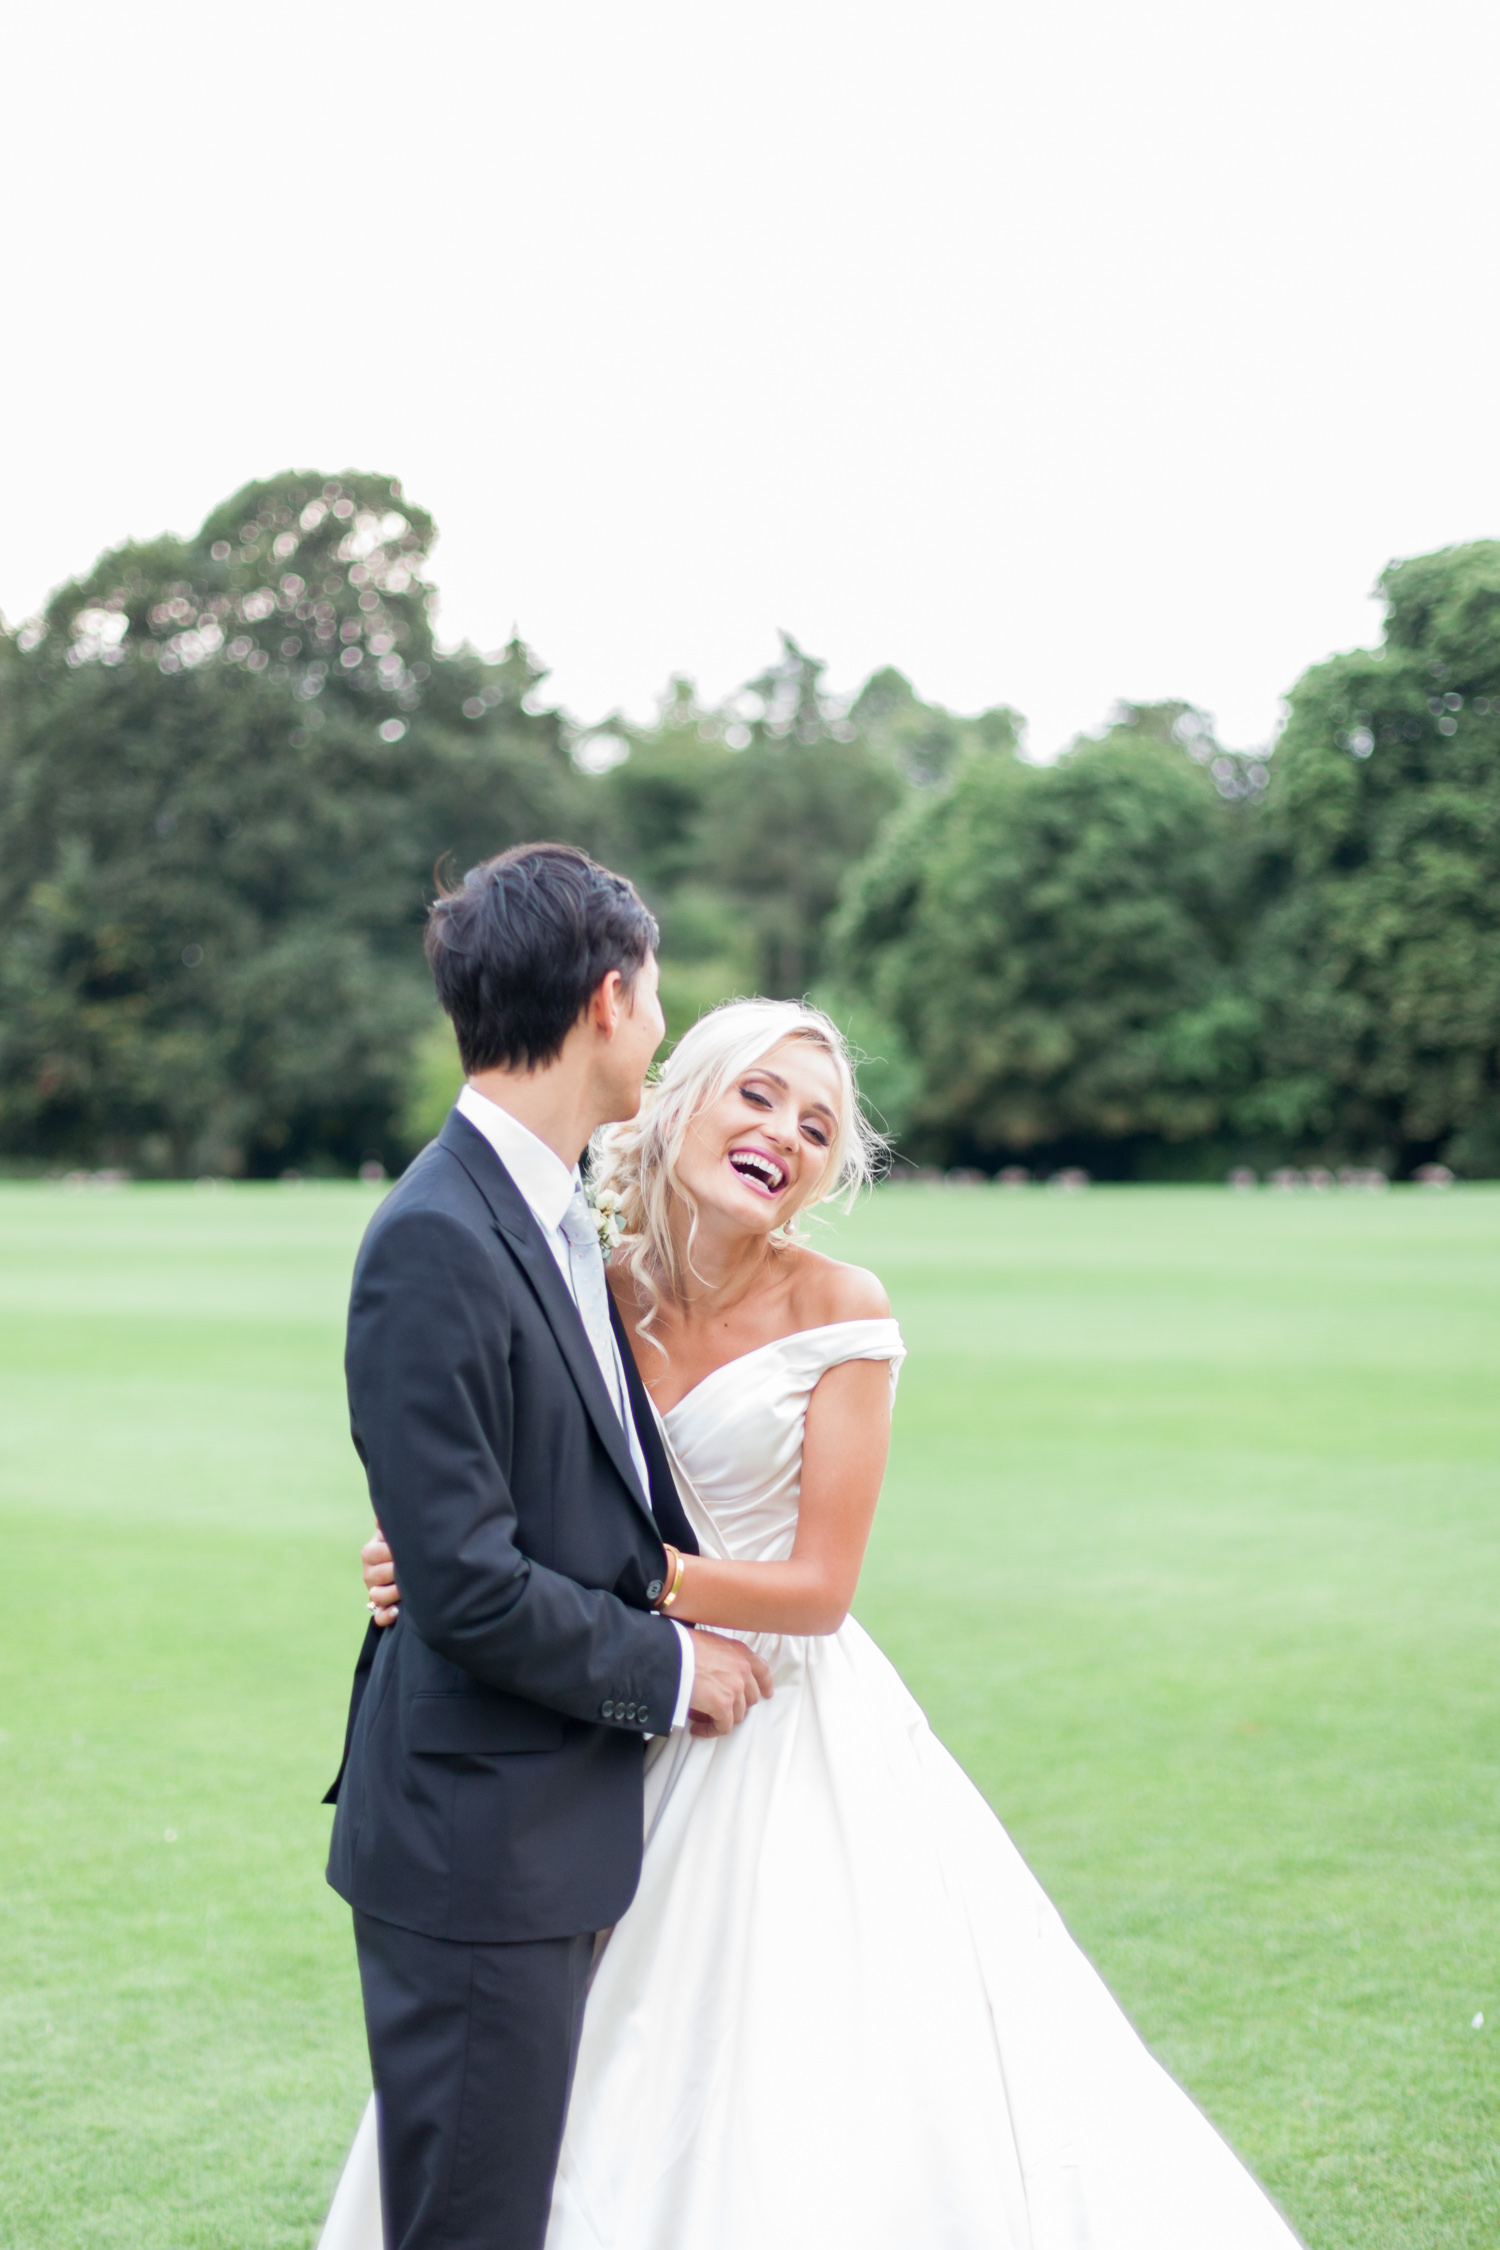 Comfortable In Front of the Camera on Your Wedding Day - a bride and groom portrait at Stowe House